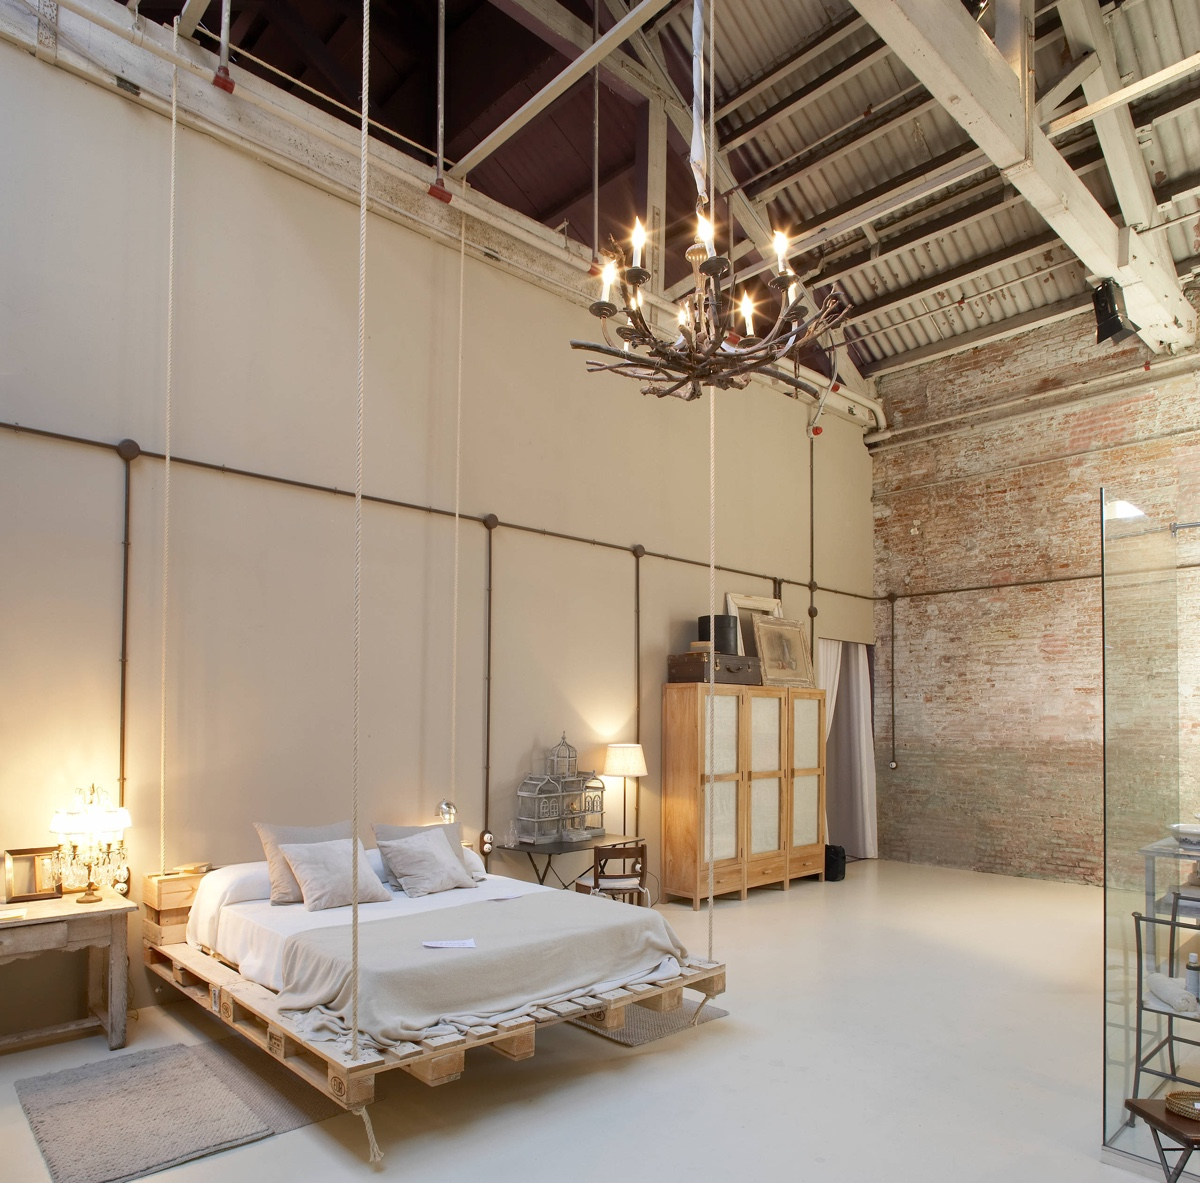 Barn Style With Chandelier Exposed Brick Bedroom - Bedrooms with exposed brick walls